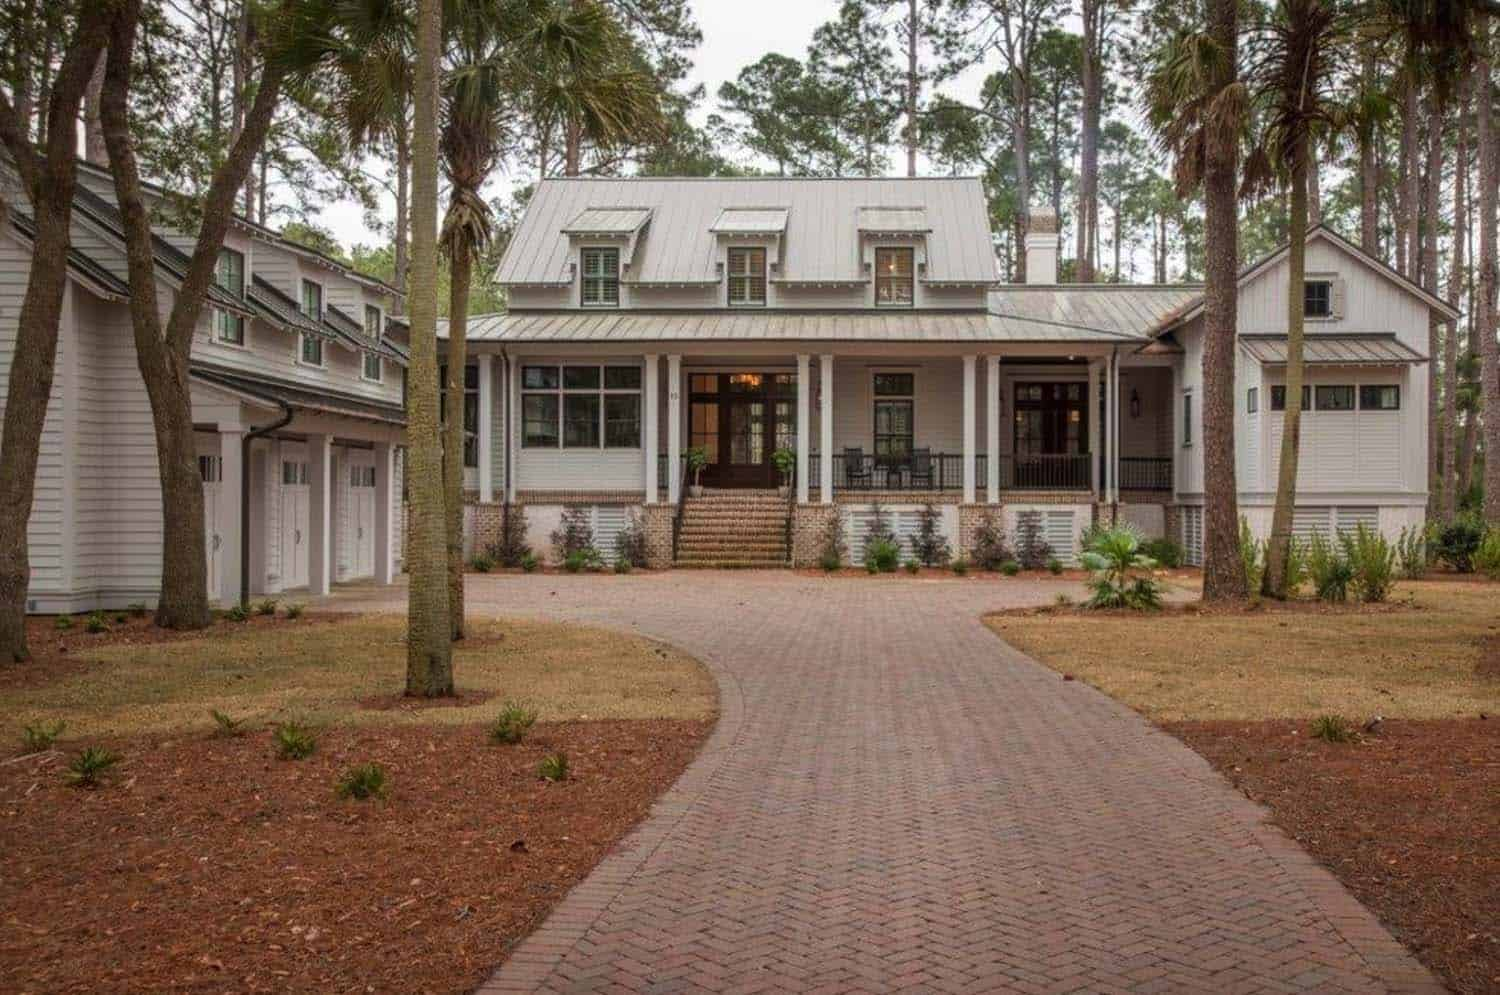 Modern meets traditional in this inviting Lowcountry river house